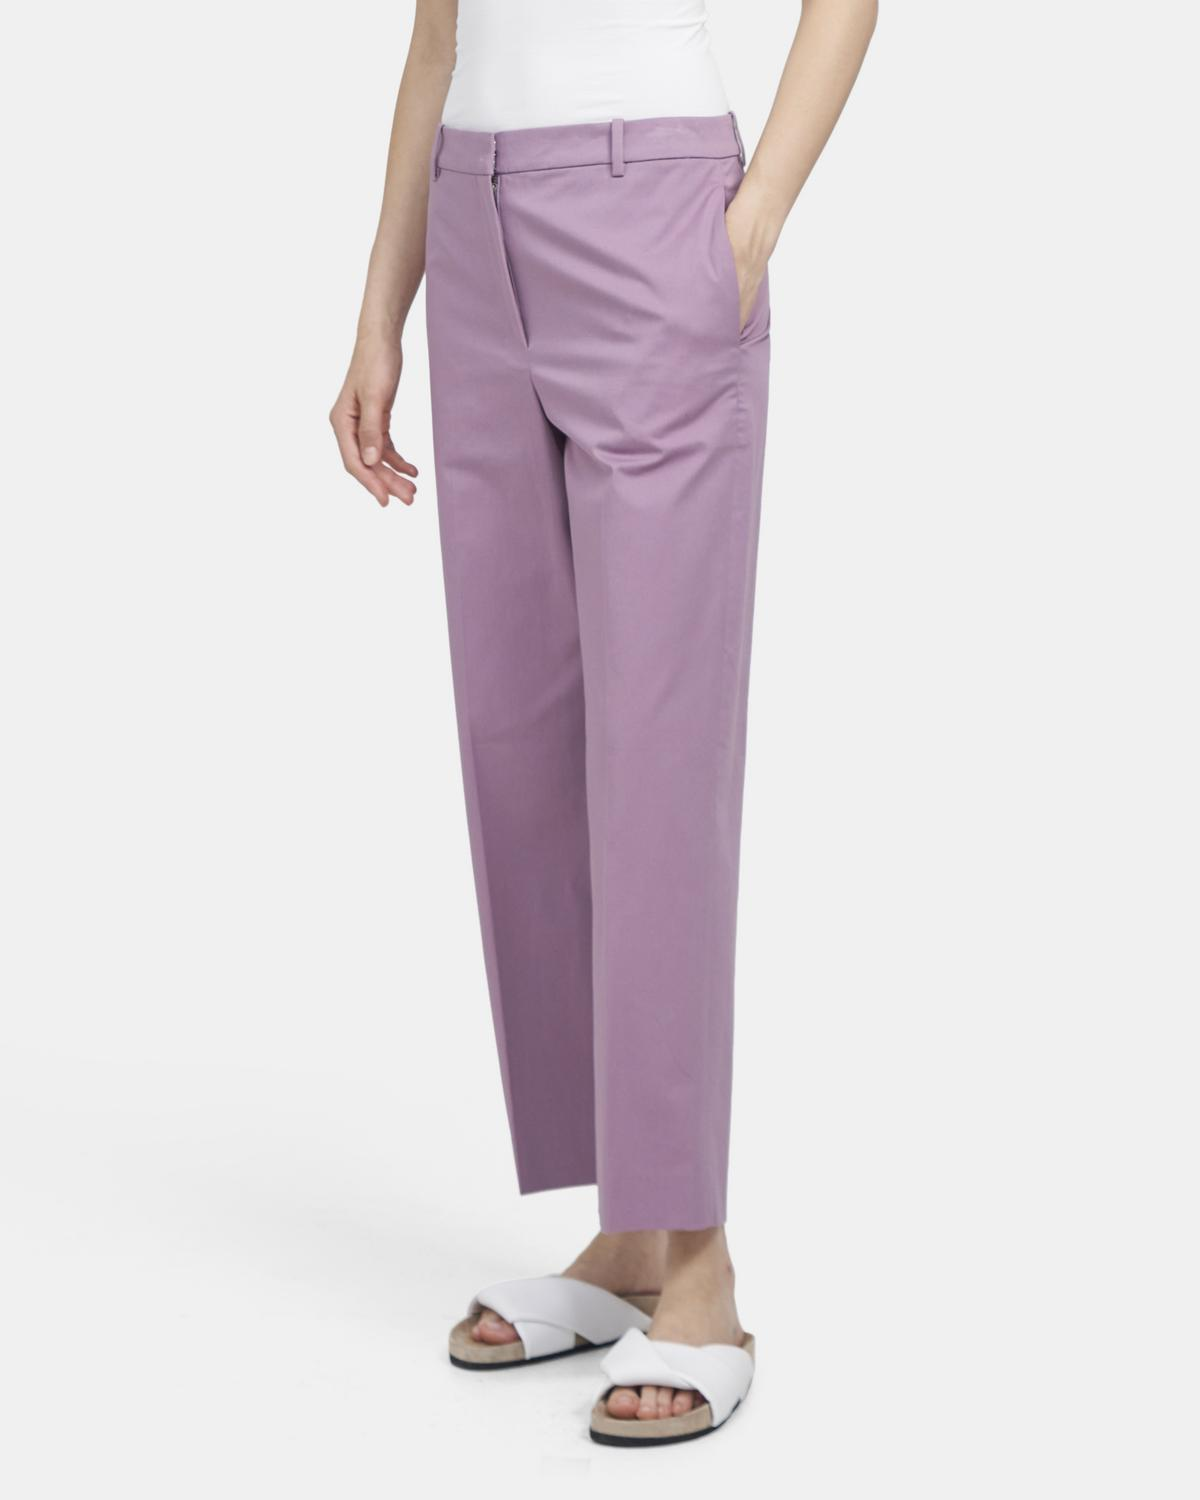 High-Rise Straight Pant in Stretch Chino